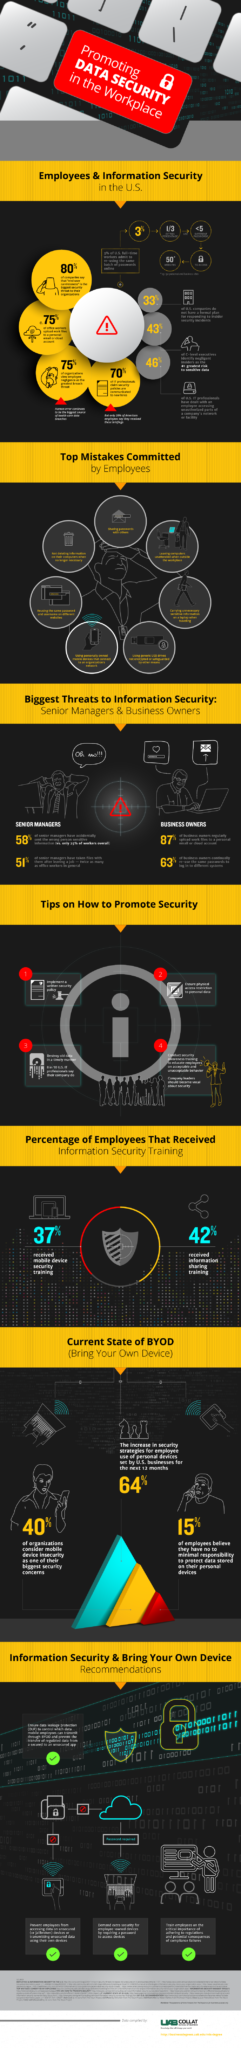 Data Security & Information Security in the Workplace | Infographic | Statistics